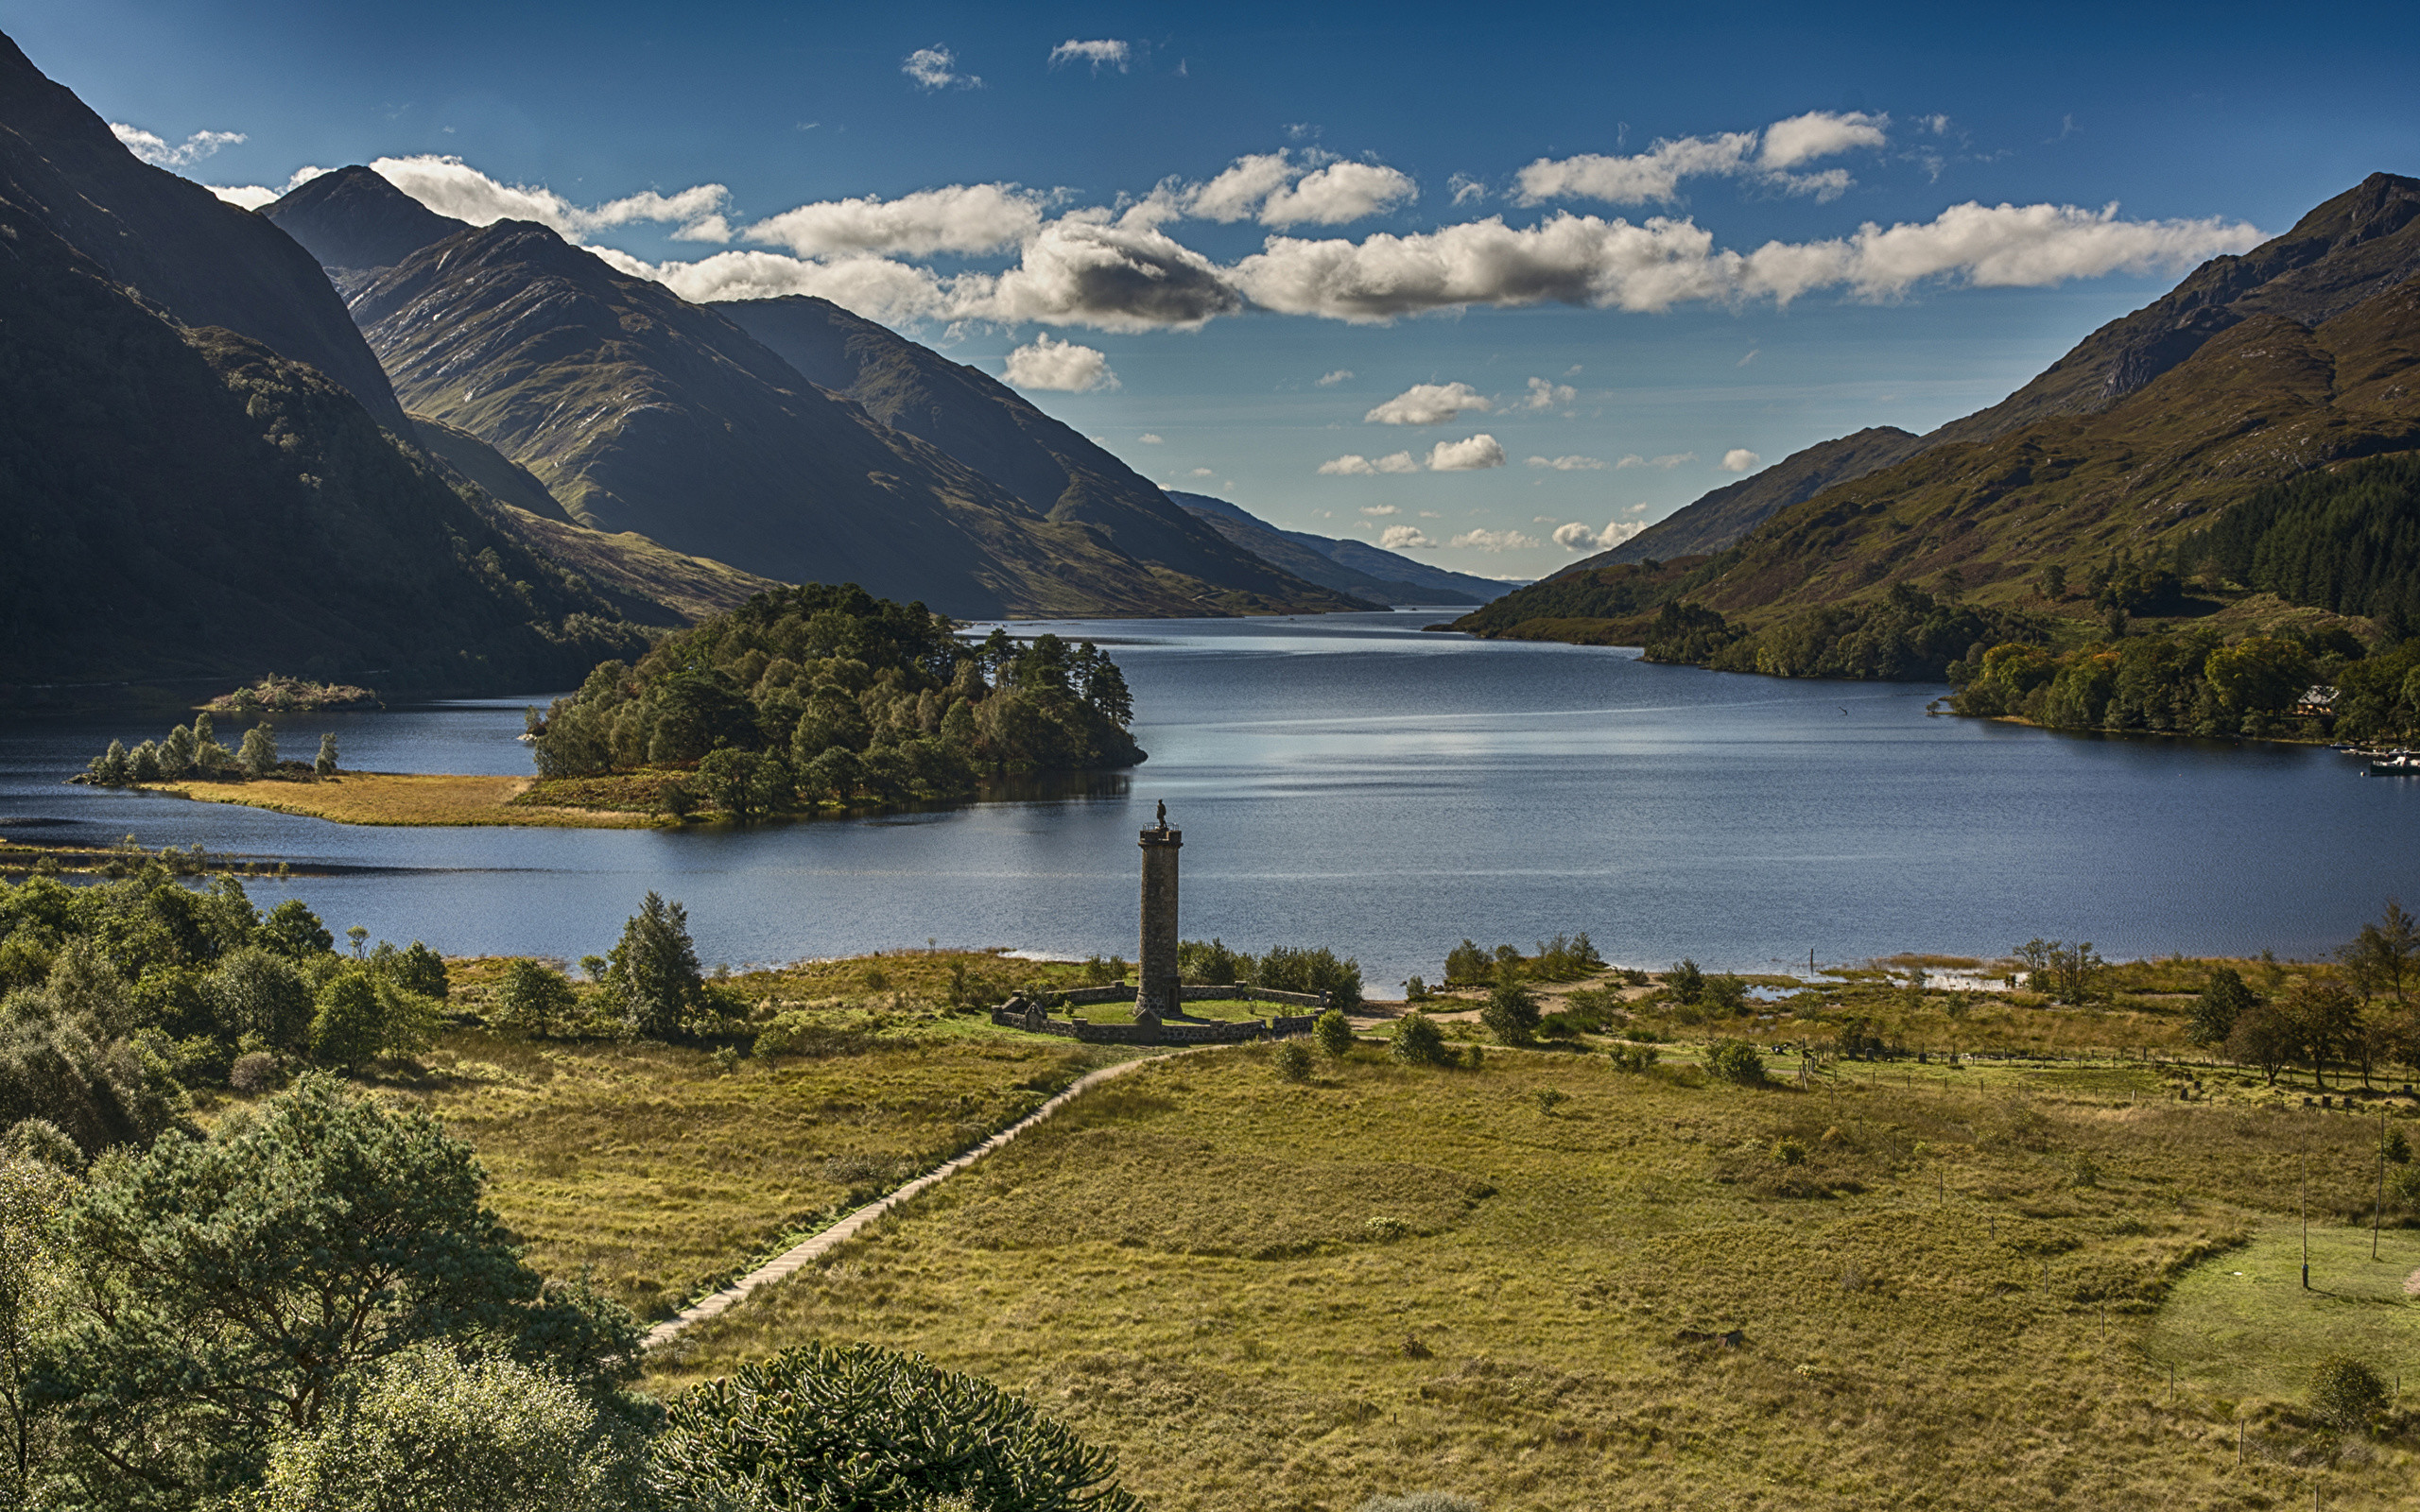 Res: 2560x1600, Wallpaper Scotland Glenfinnan Nature Mountains Lake Landscape photography  Coast Clouds  Scenery